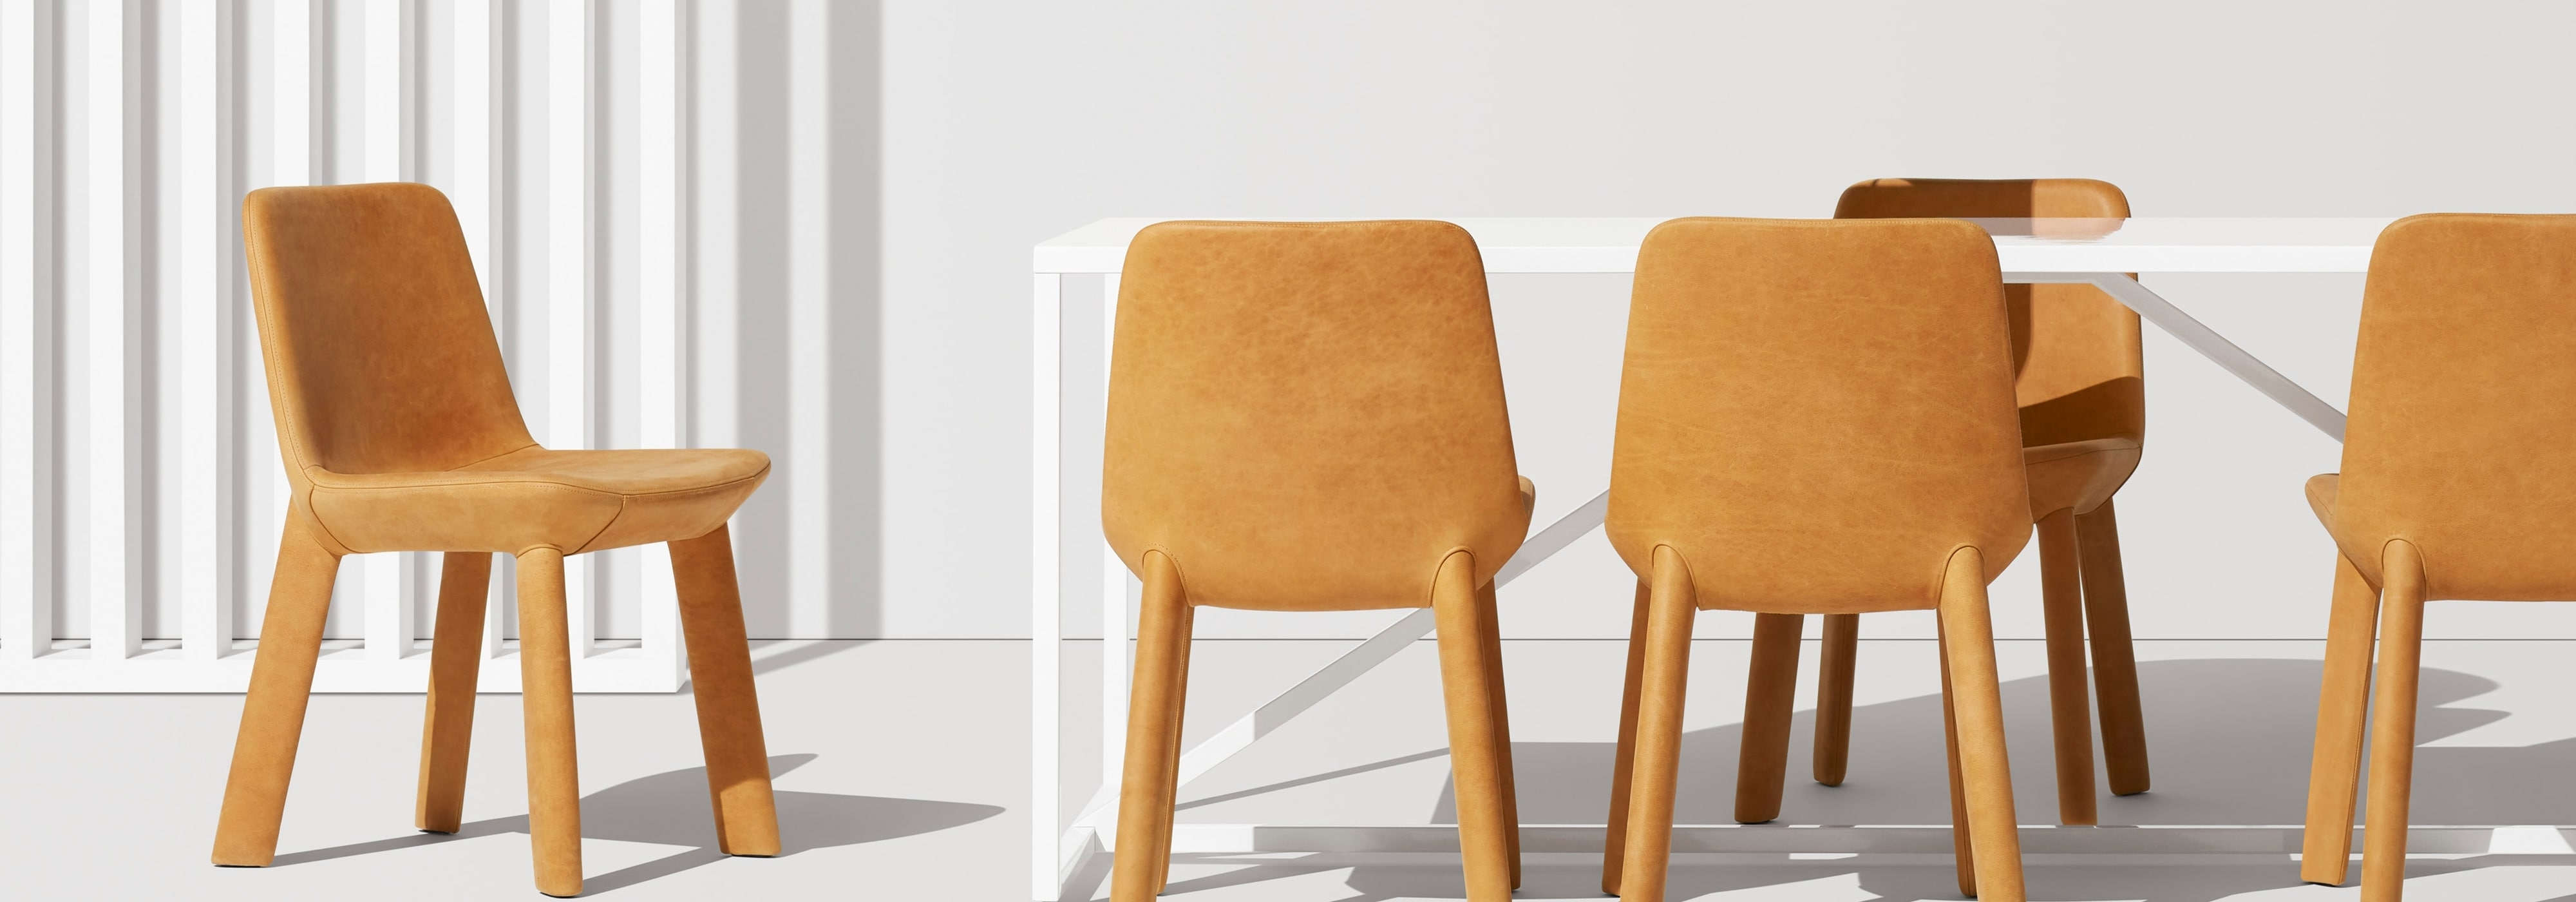 Dining Room Chairs Throughout 2017 Modern Dining Chairs – Dining Room Chairs (View 11 of 25)